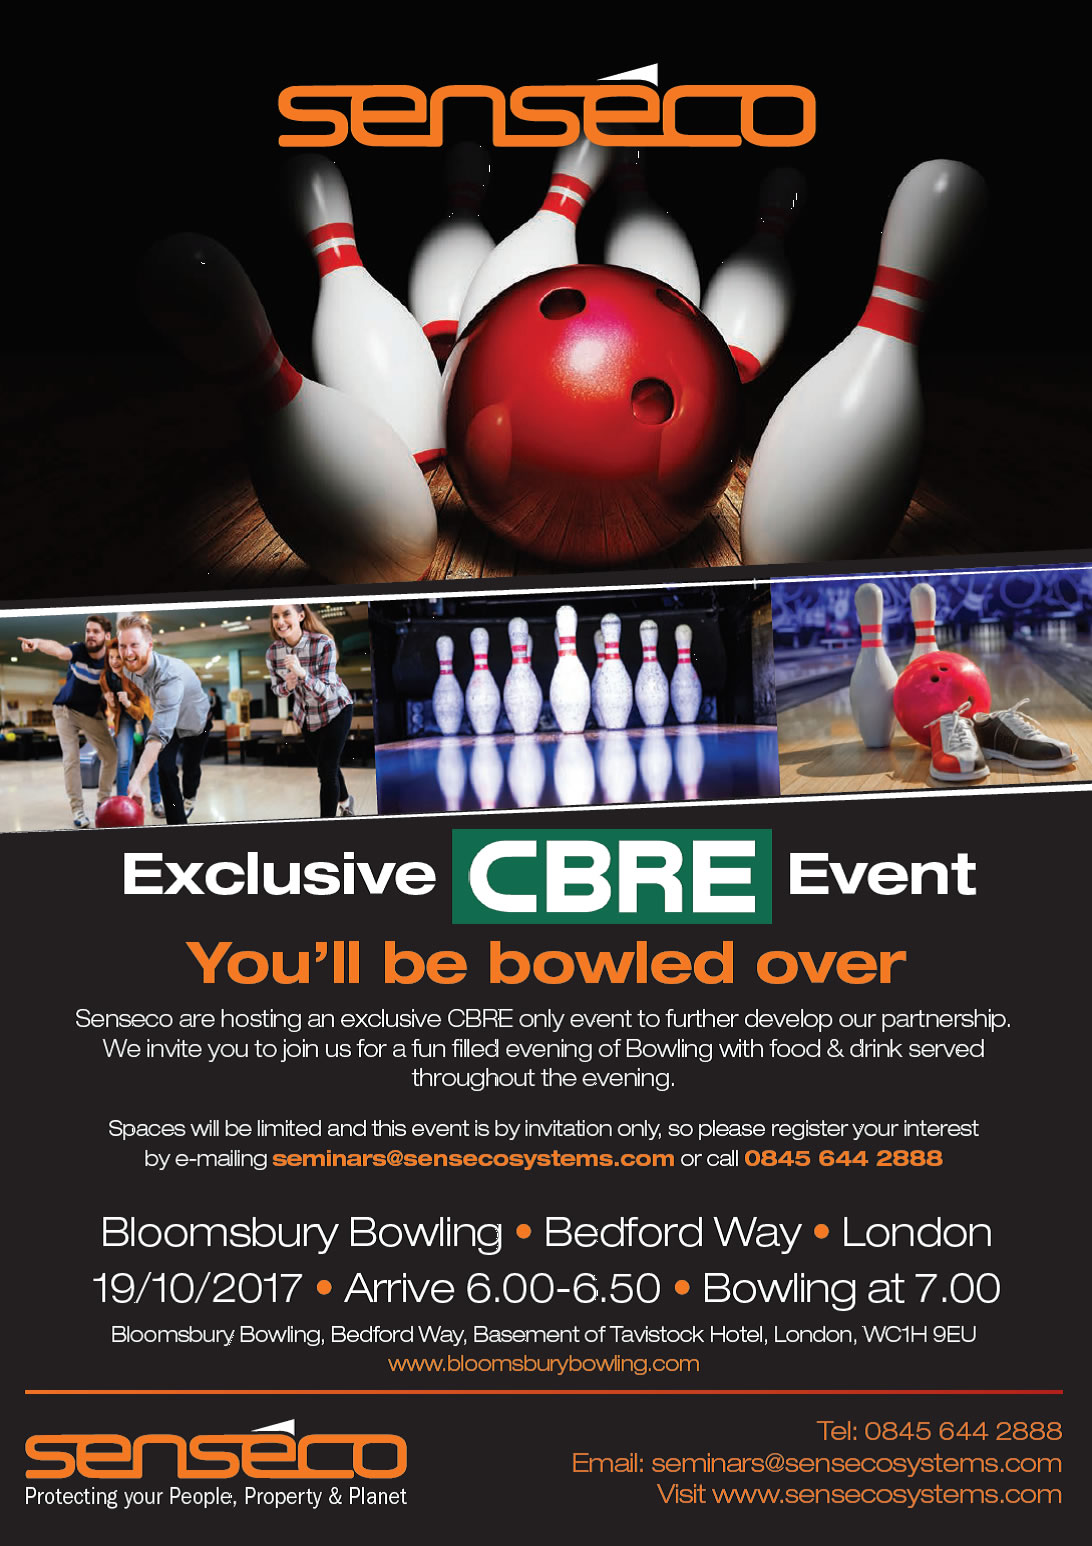 Exclusive CBRE Bowling Senseco Systems